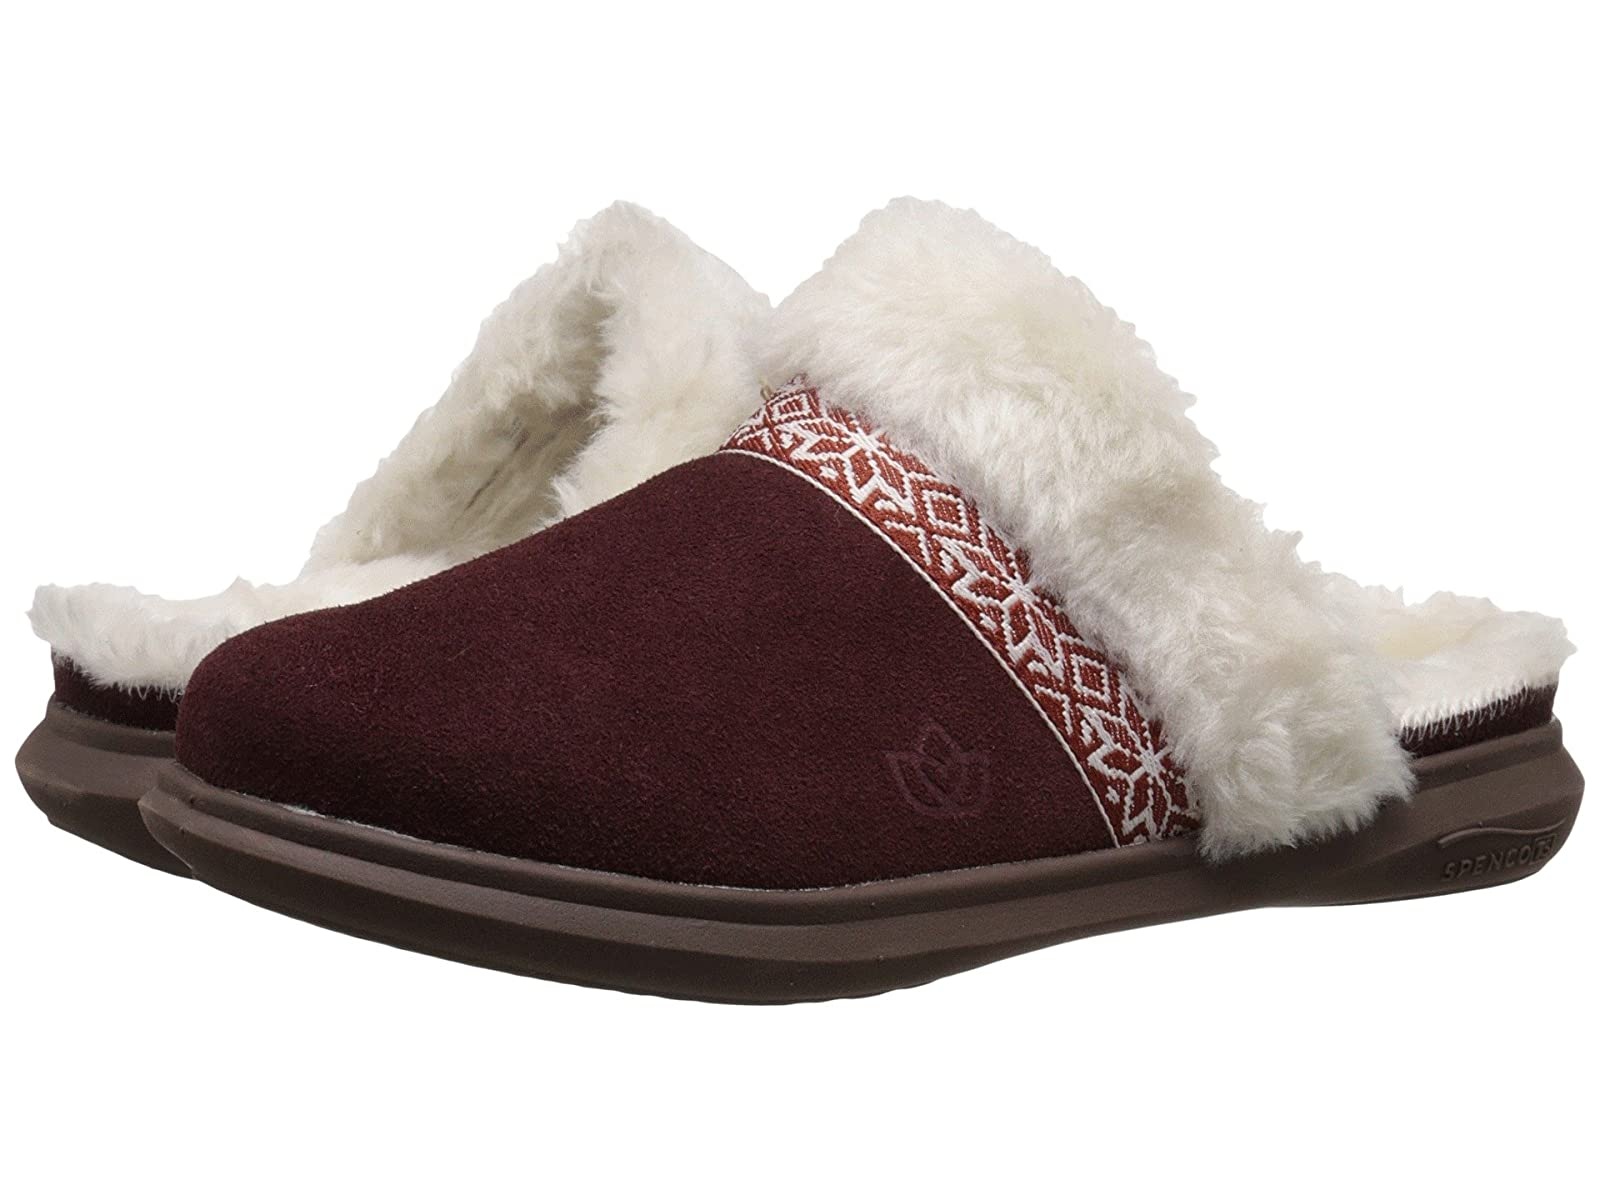 Spenco Nordic SlideCheap and distinctive eye-catching shoes